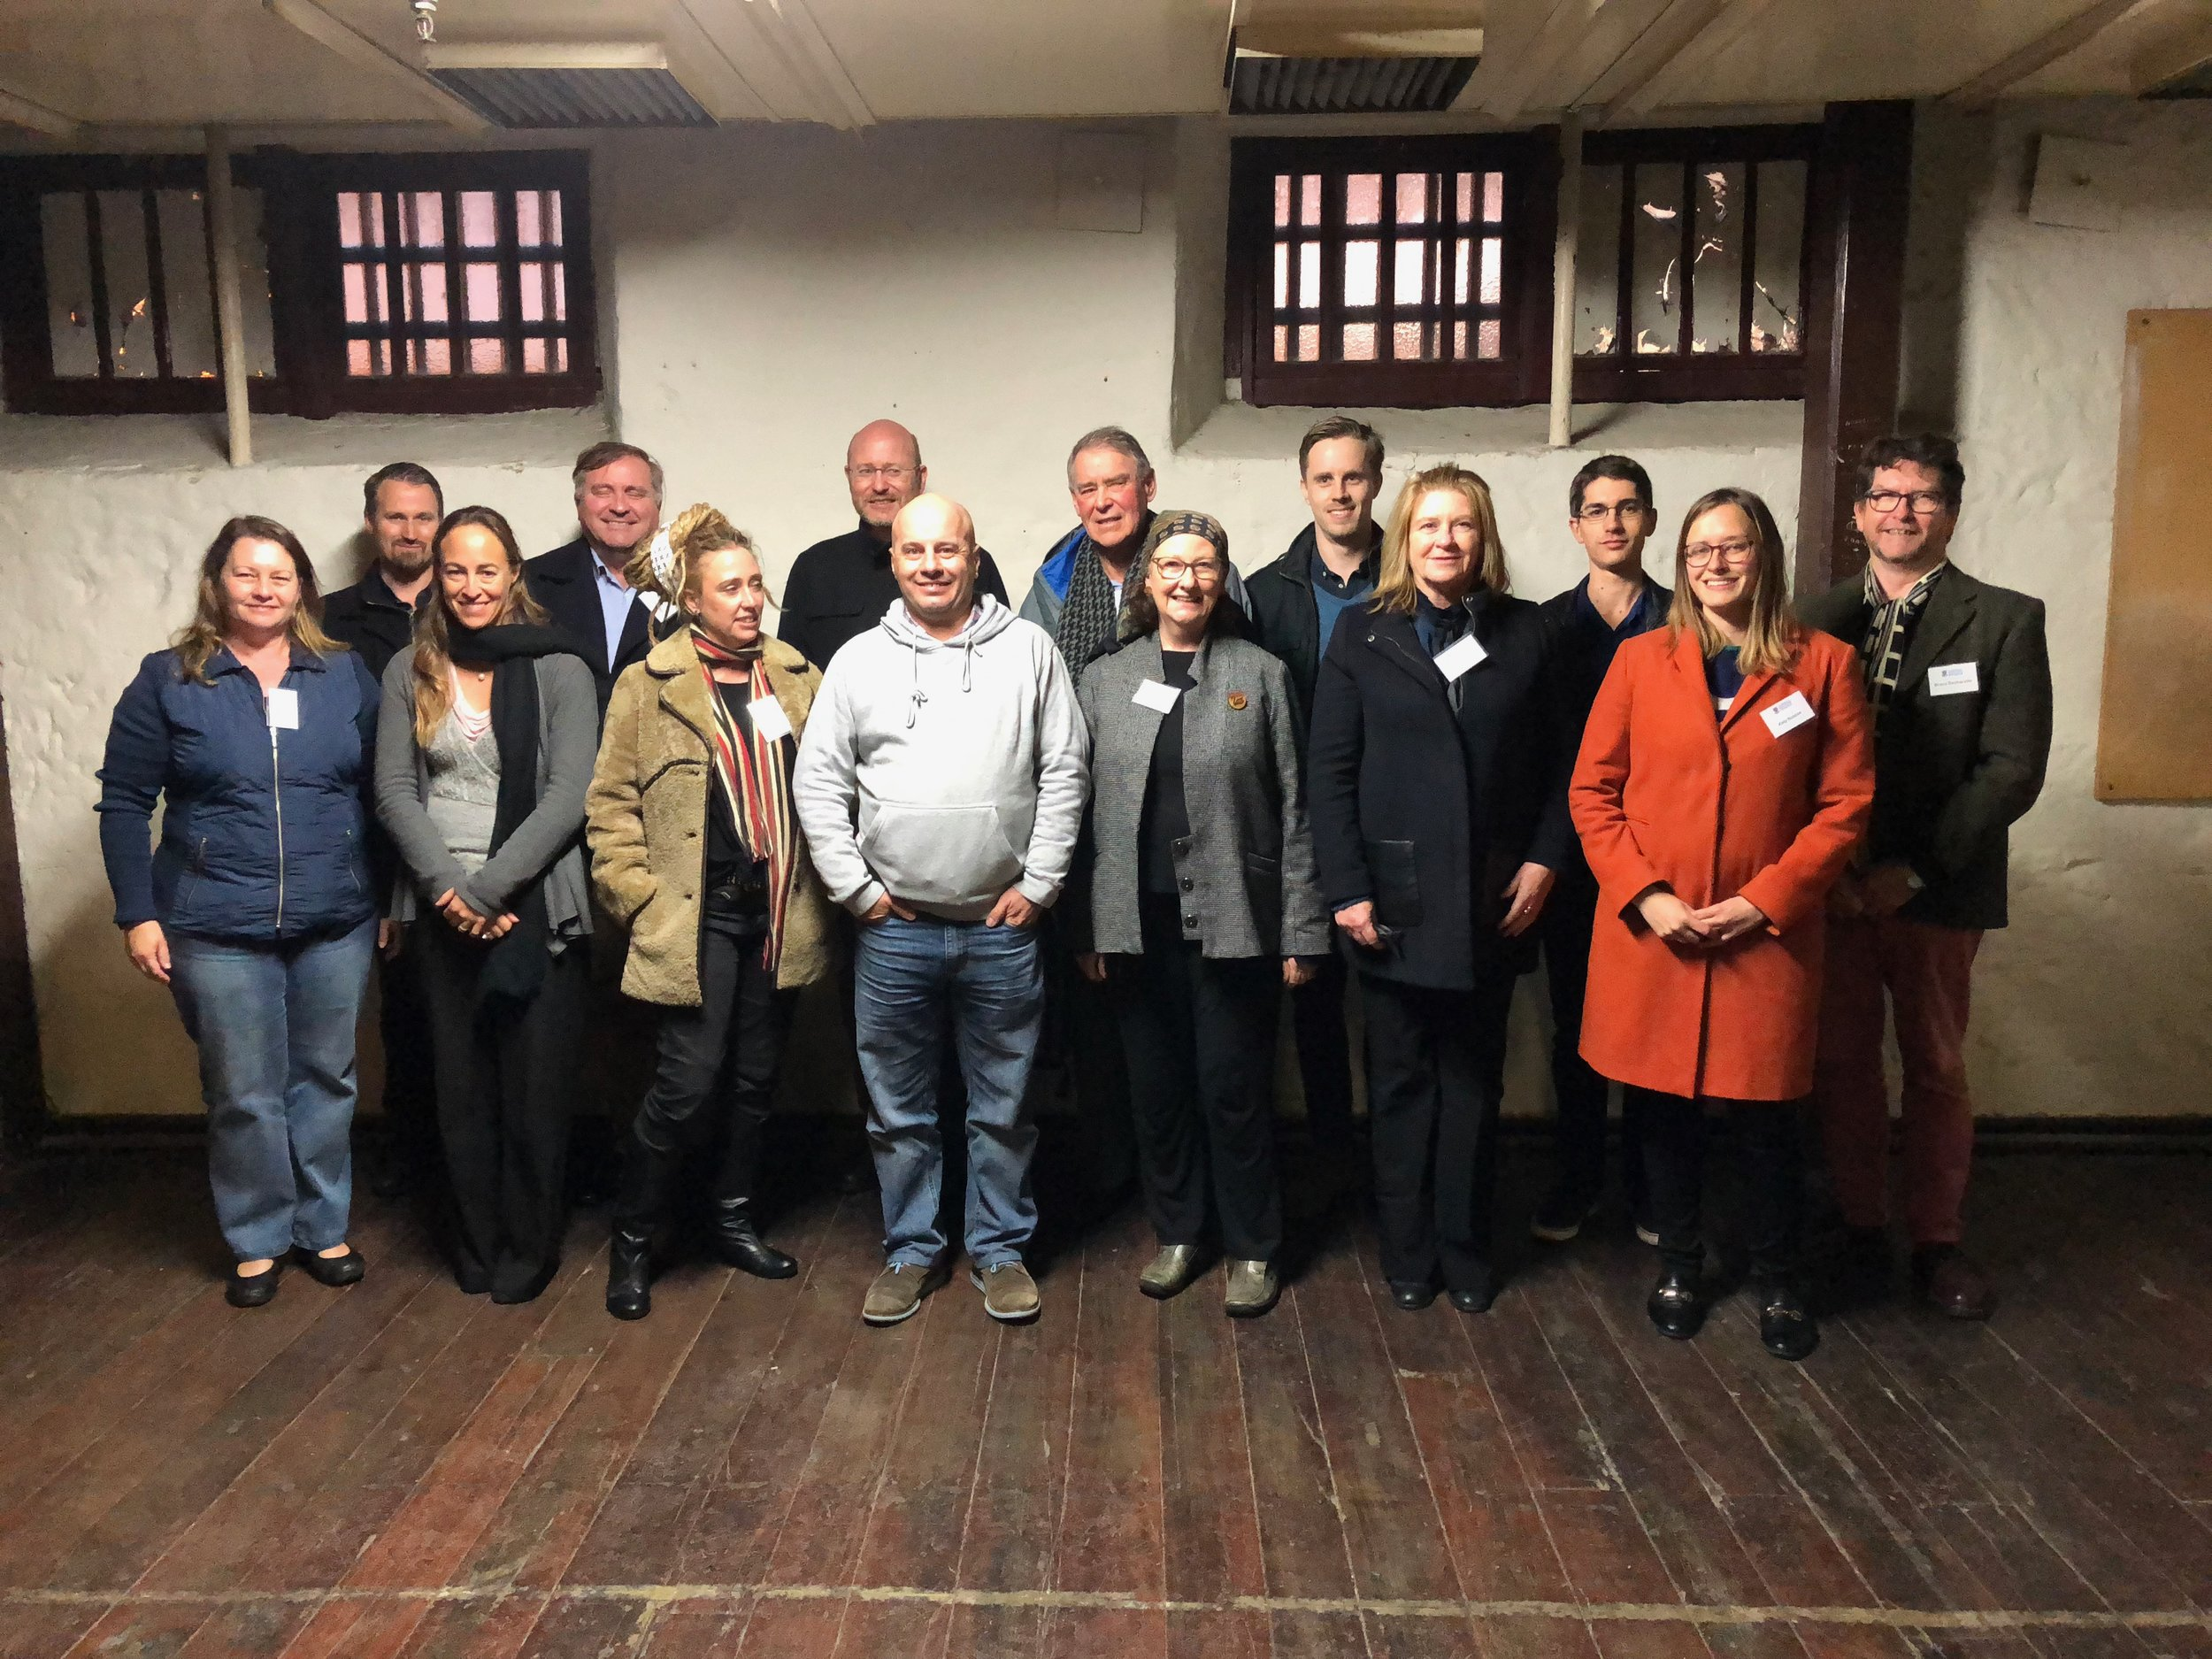 Back row (L to R): Moss Wilson, Shane Burke, Hamish Maxwell-Stewart, Bill Edgar, Louis Marshall, Sean Liddelow, Bruce Baskerville Front row (L to R): Lucy Hair, Olimpia Cullity, B'geella Romano, Sean Winter, Jenny Gregory, Denise Young, Katy Roscoe